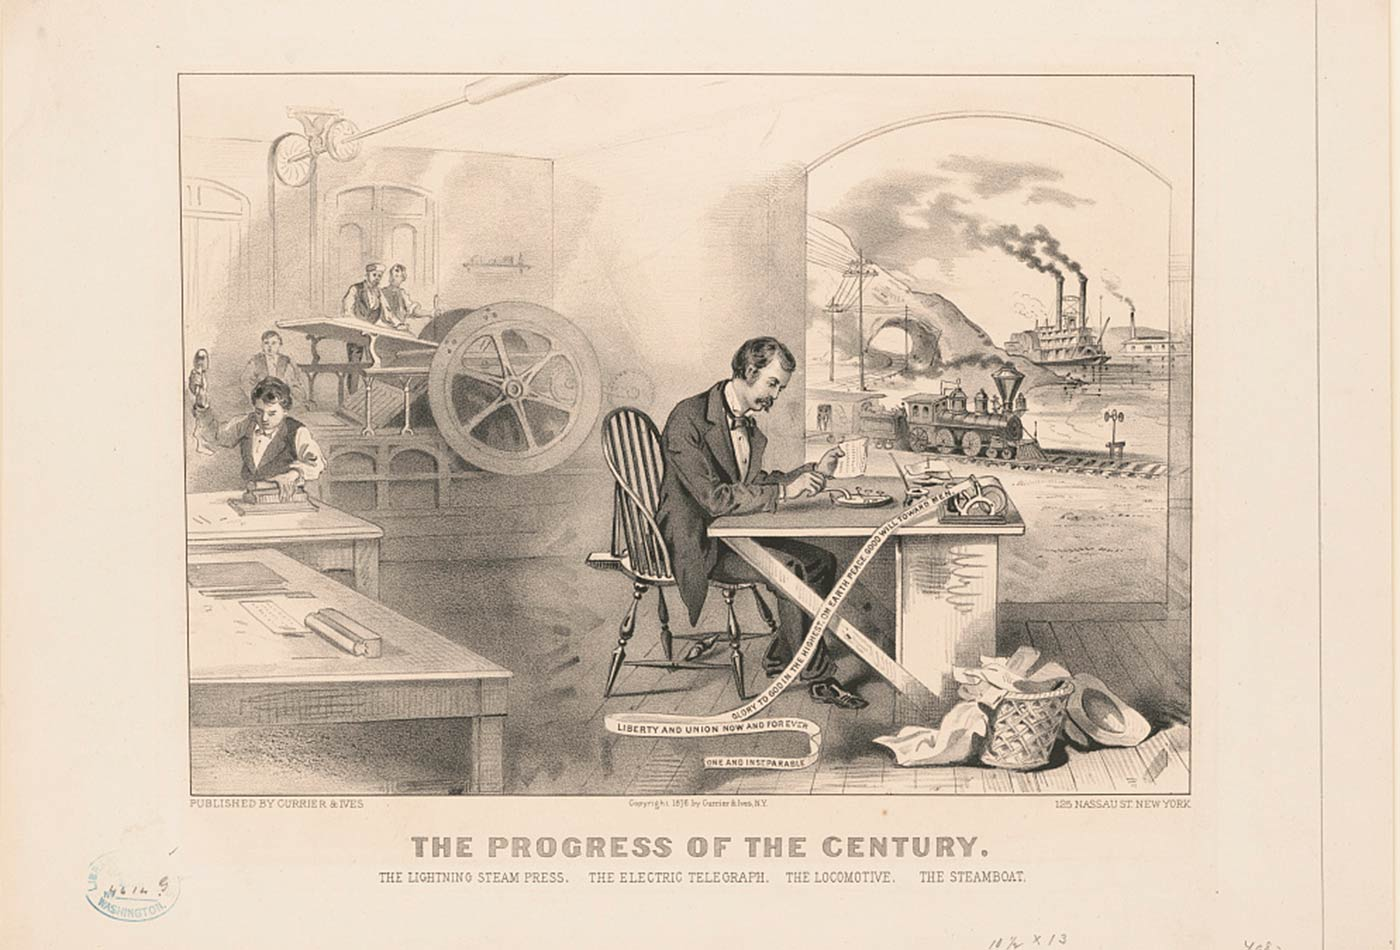 """The progress of the century: The lightning steam press, the electric telegraph, the locomotive, [and] the steamboat,"" by Currier & Ives, circa 1876."